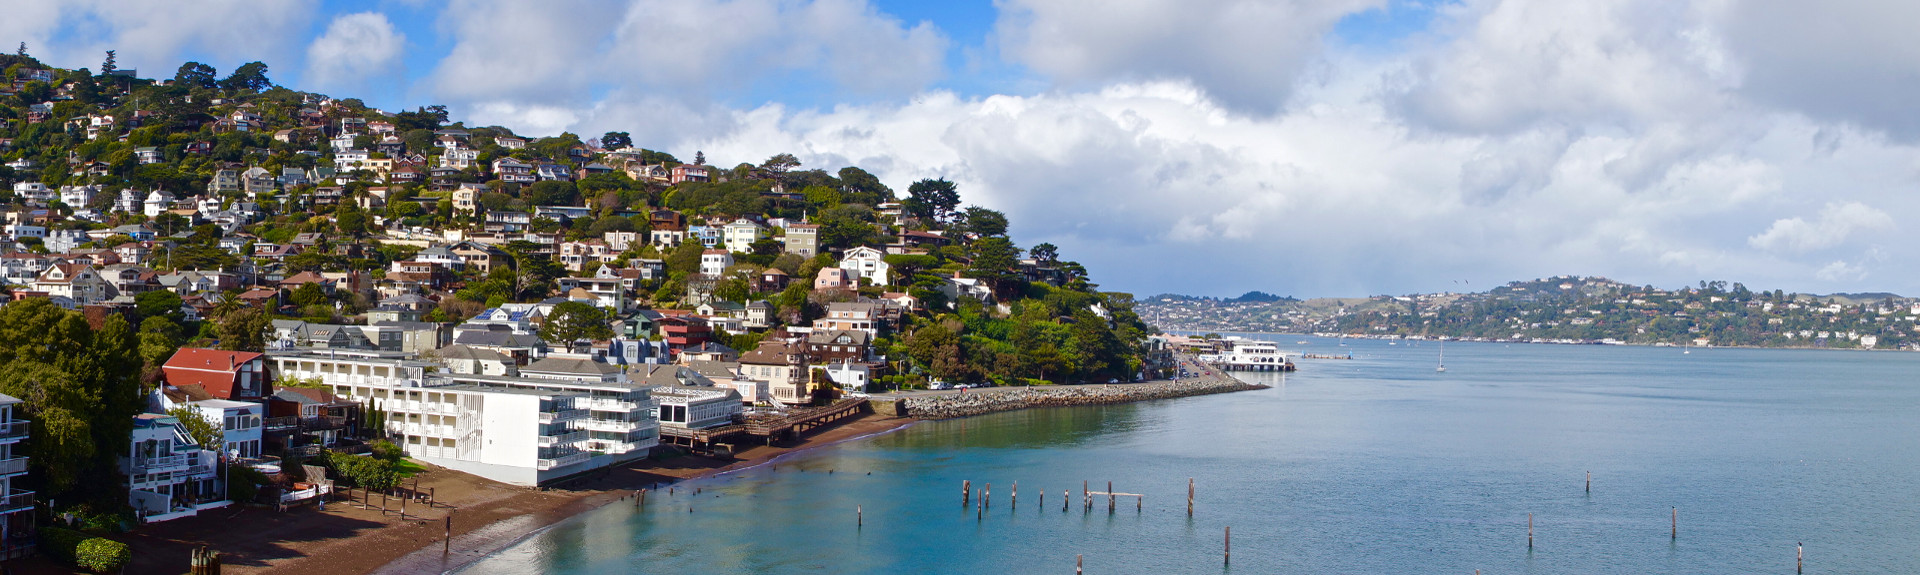 Sausalito - Old Town